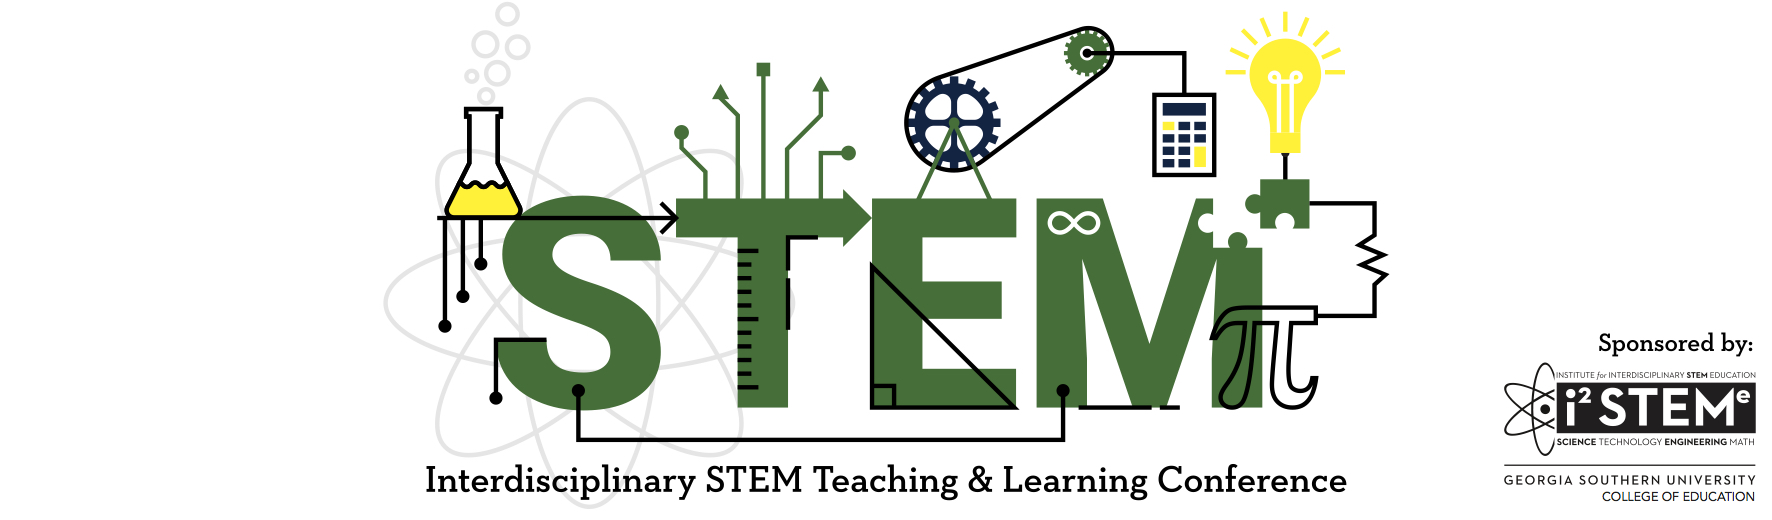 2018 Interdisciplinary STEM Teaching and Learning Conference